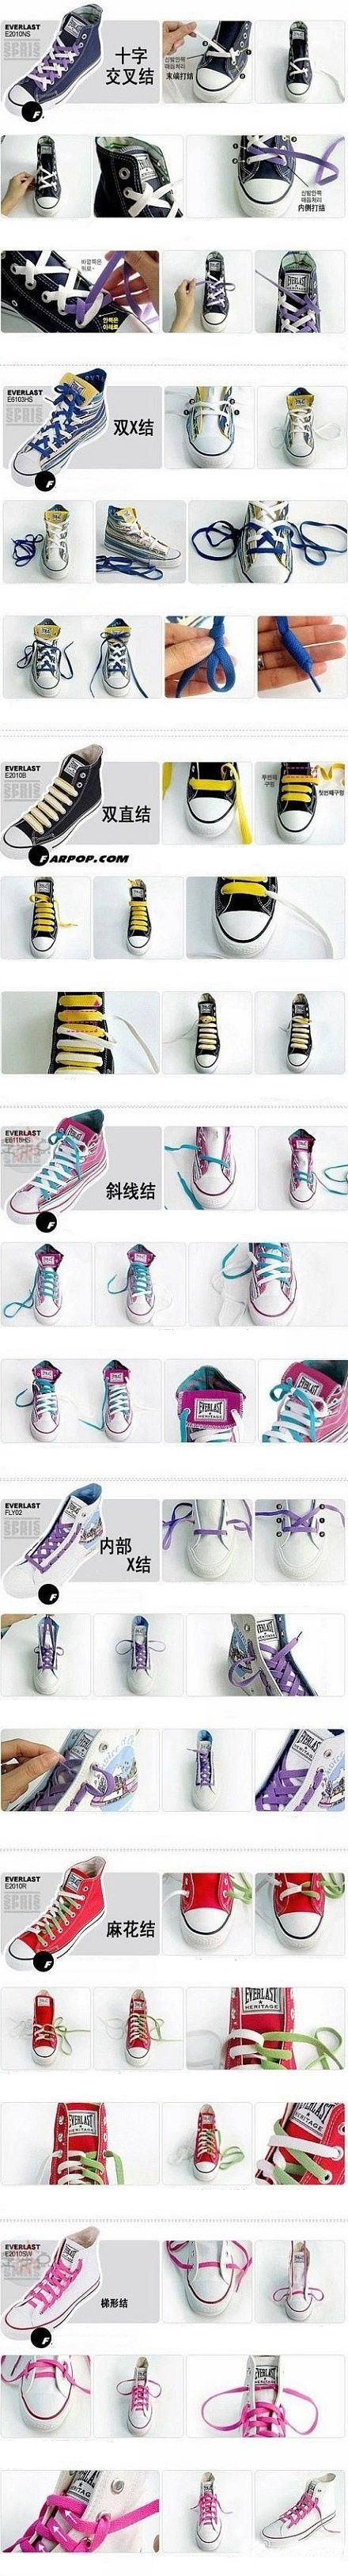 7 Cool Ways To Tie Your Shoe Laces : DIY and Craft Tutorials. Really like these!! I'll need to try them on a new pair of Converse.